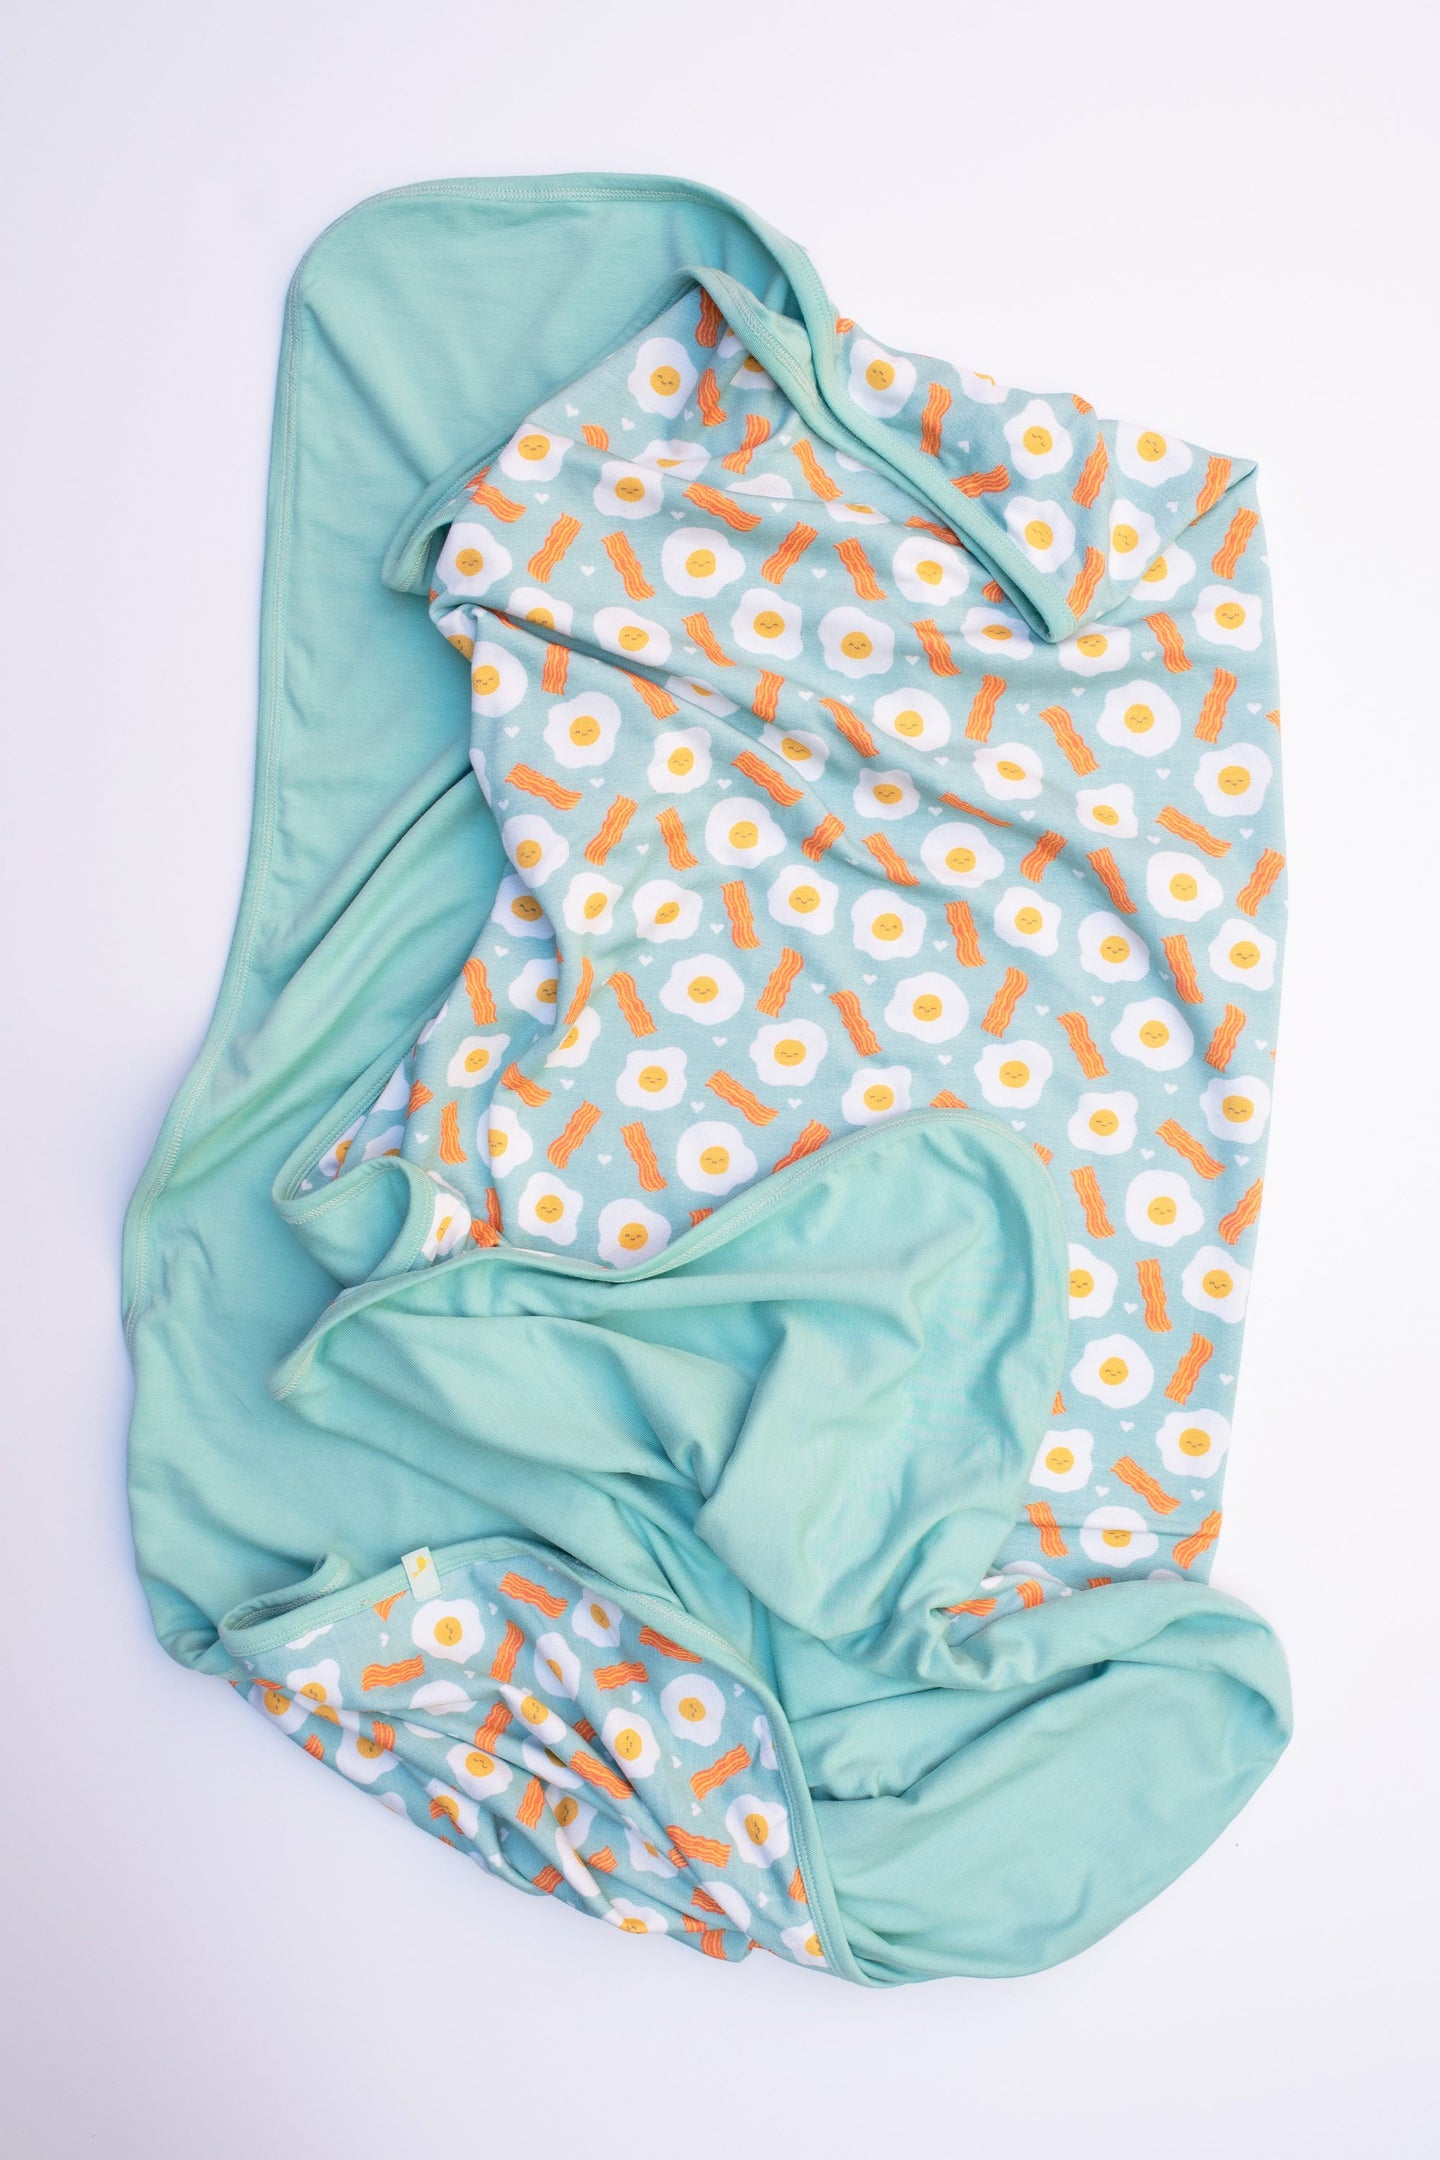 Clover - Bamboo Swaddle Blanket Bacon and Eggs